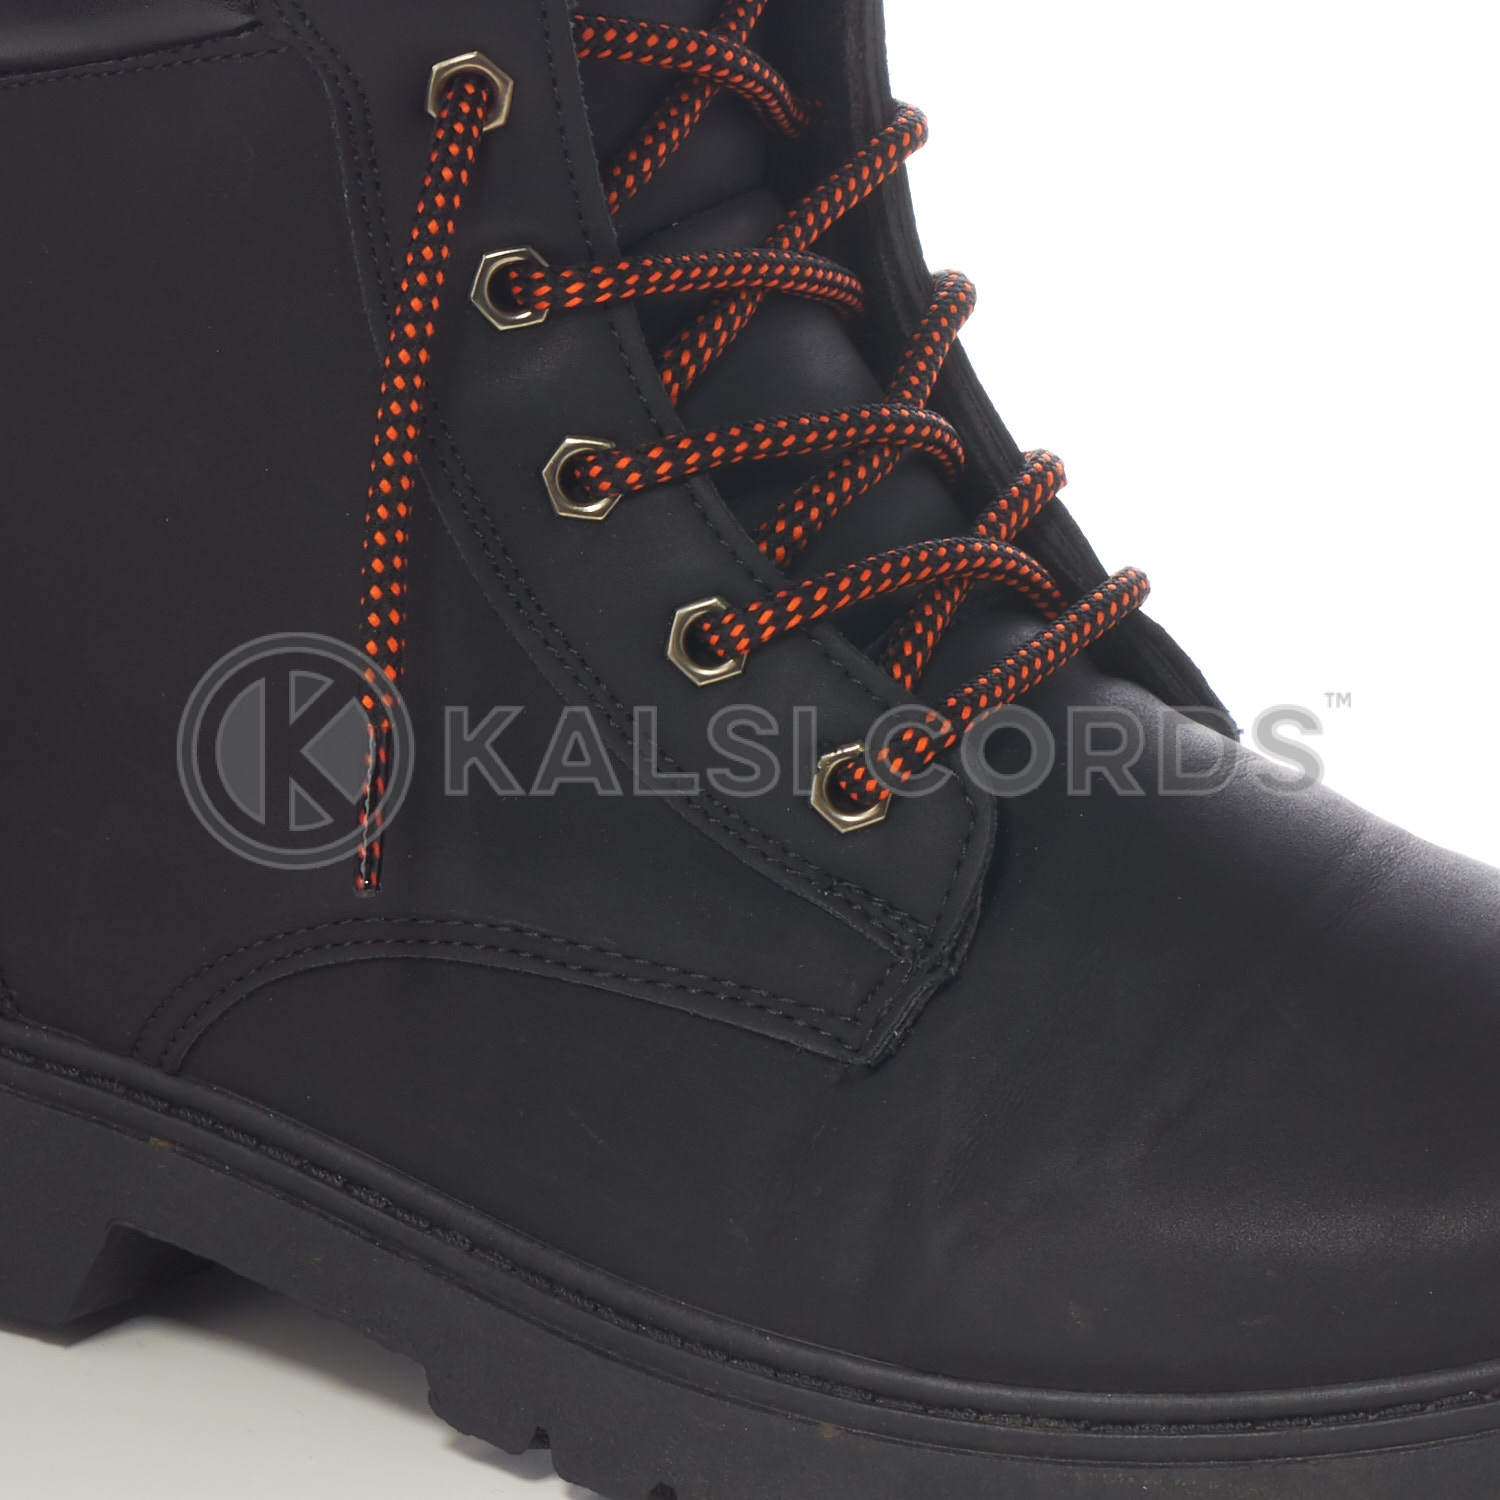 T621 5mm Round Cord Fleck Shoe Lace Black Orange Kids Trainers Adults Hiking Walking Boots Kalsi Cords